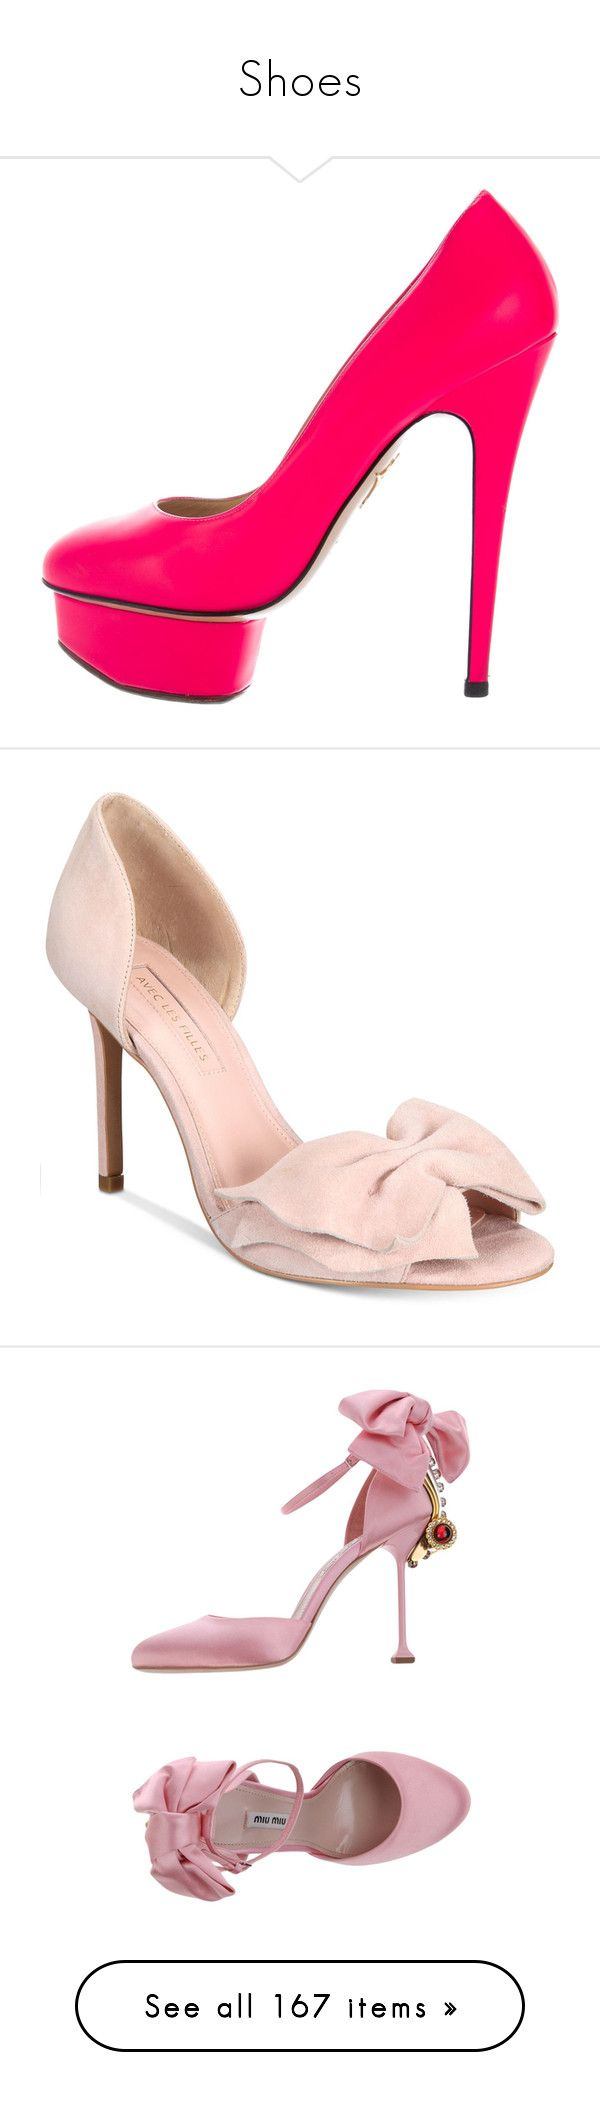 """""""Shoes"""" by lauren-mcauliffe14 ❤ liked on Polyvore featuring shoes, pumps, pink, pink platform pumps, neon pink pumps, neon pumps, leather pumps, leather shoes, avec pink kid suede and suede pumps"""